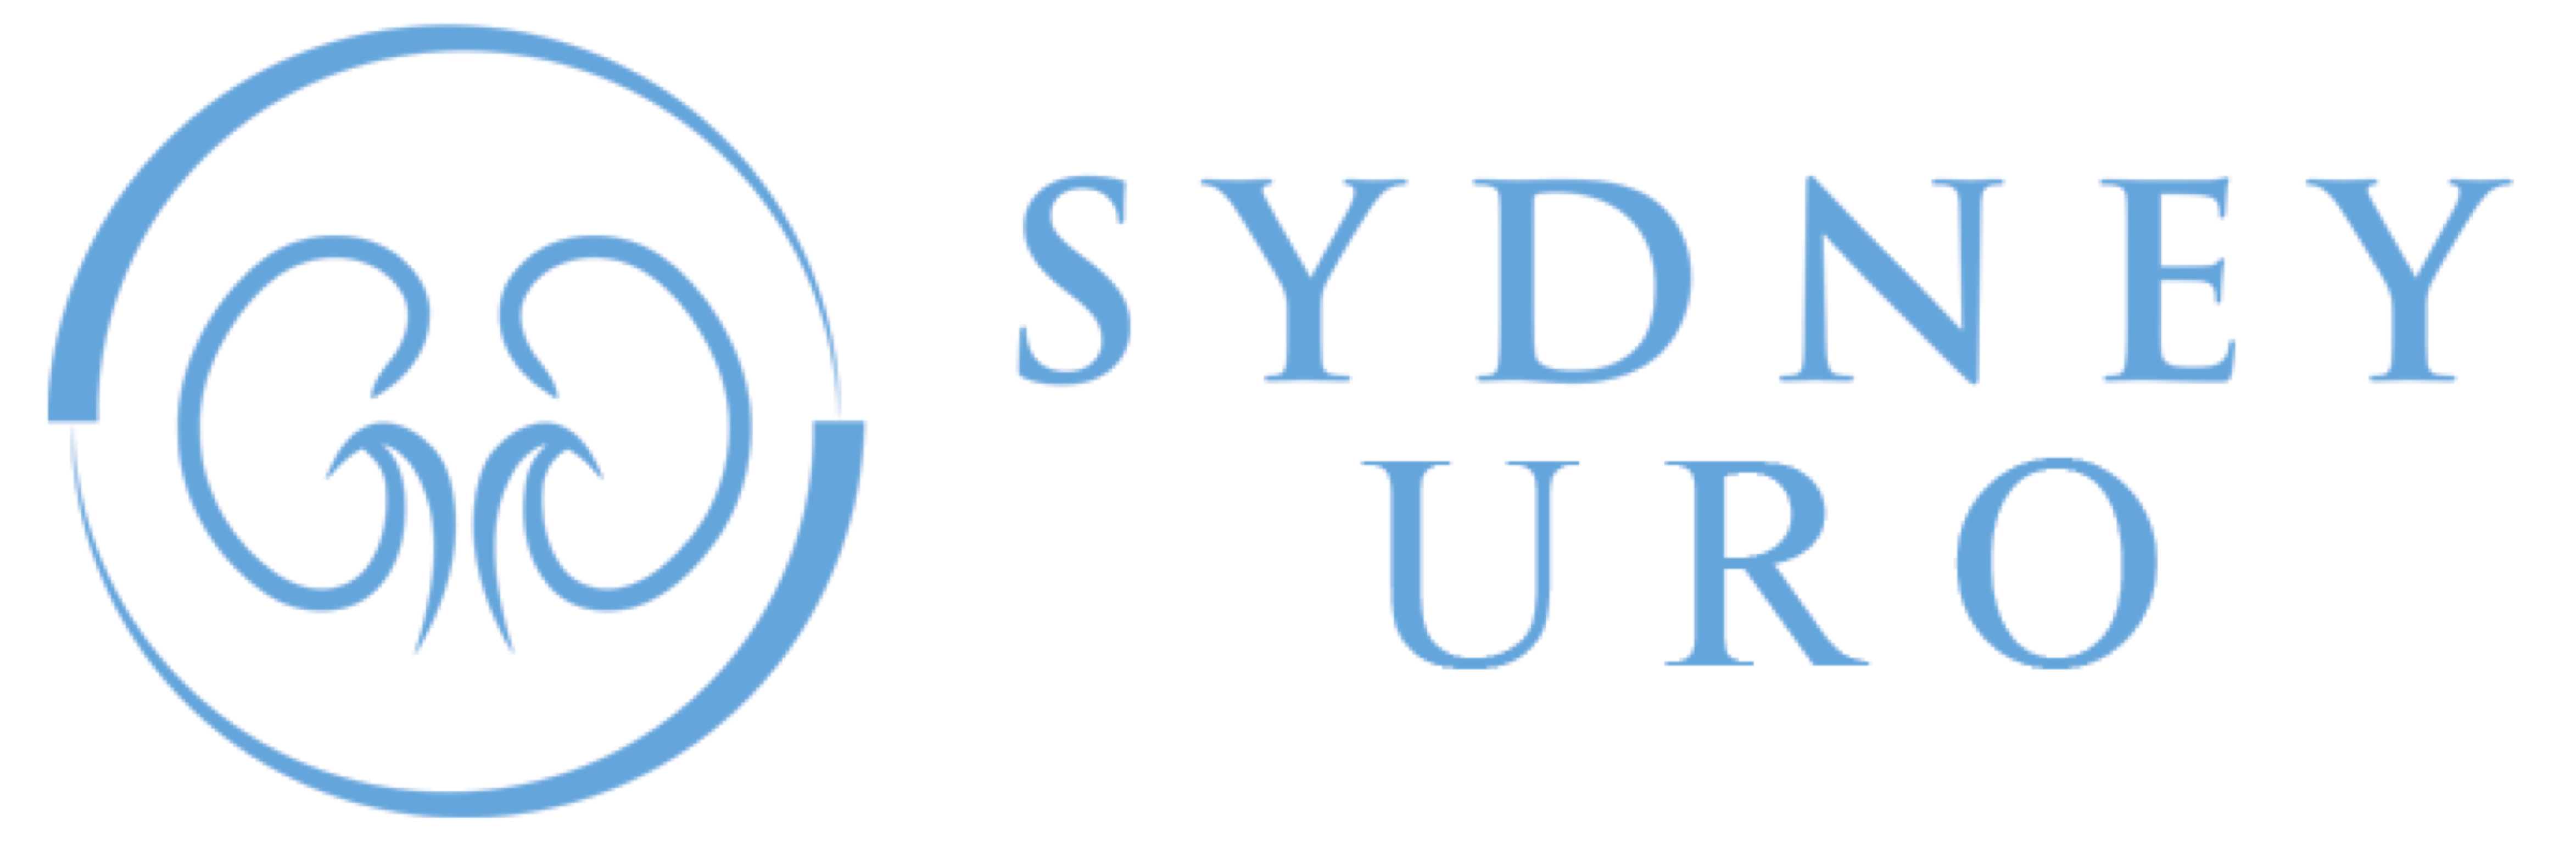 logo for Dr James Symons Urologists